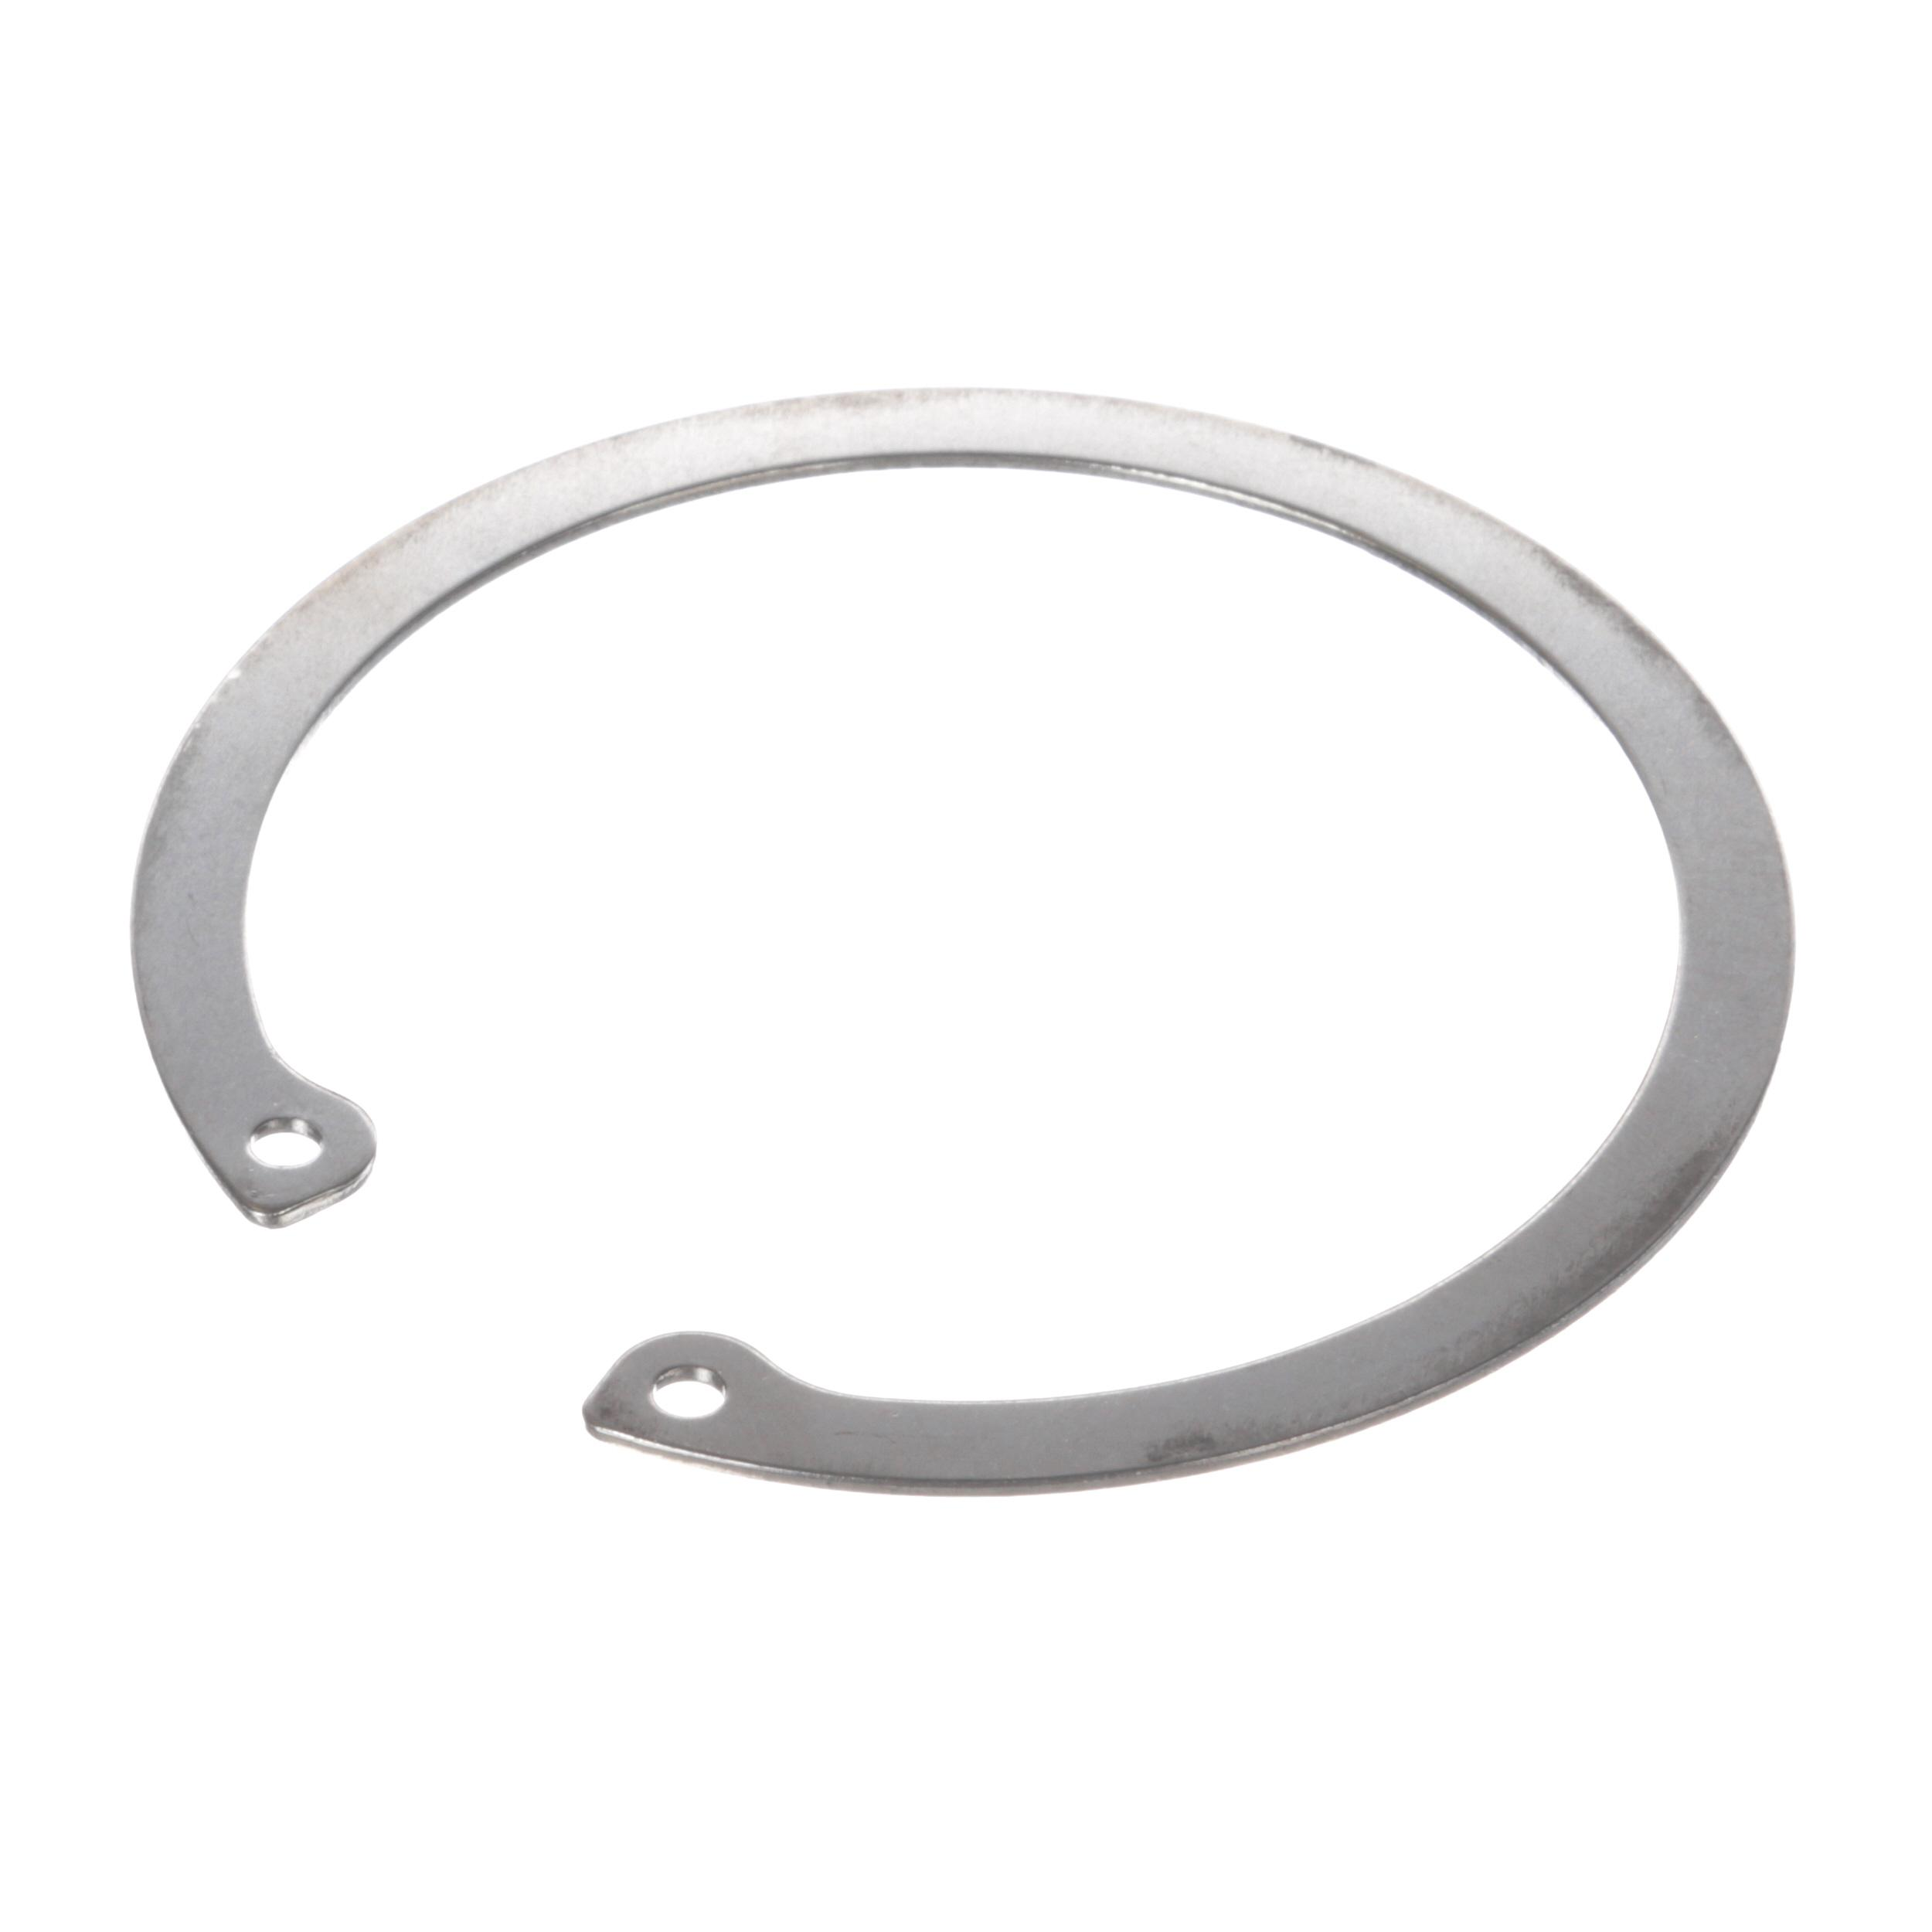 ICE-O-MATIC RETAINING RING